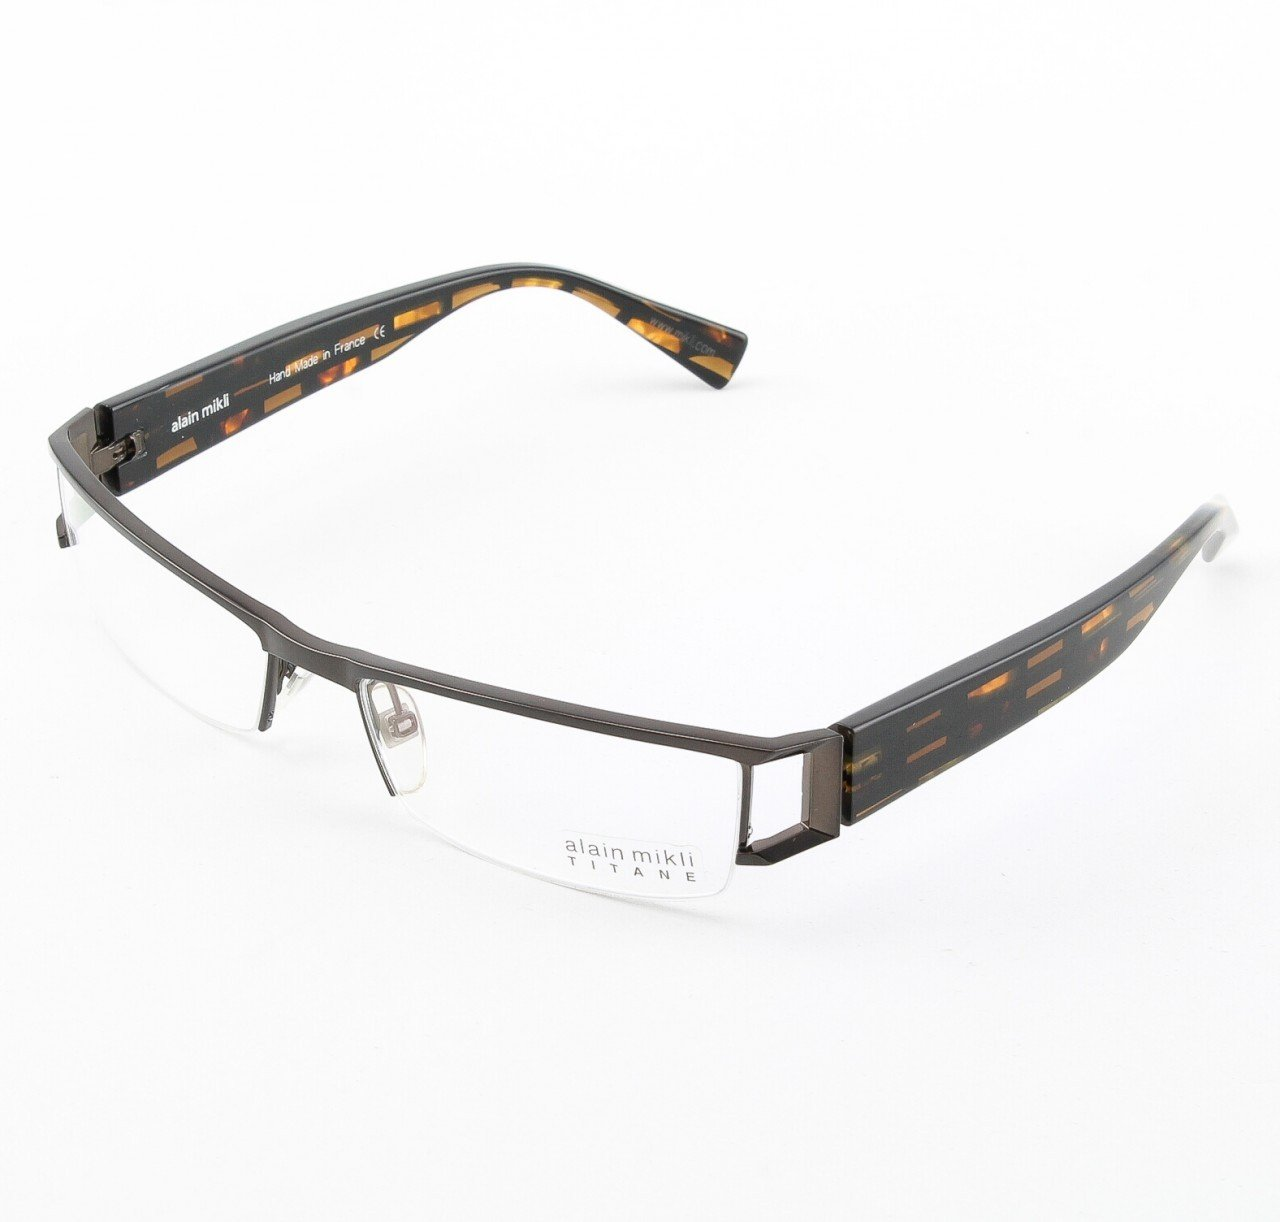 Alain Mikli Eyeglasses AL0867 Col. 86 Geometric Black and Tortoise